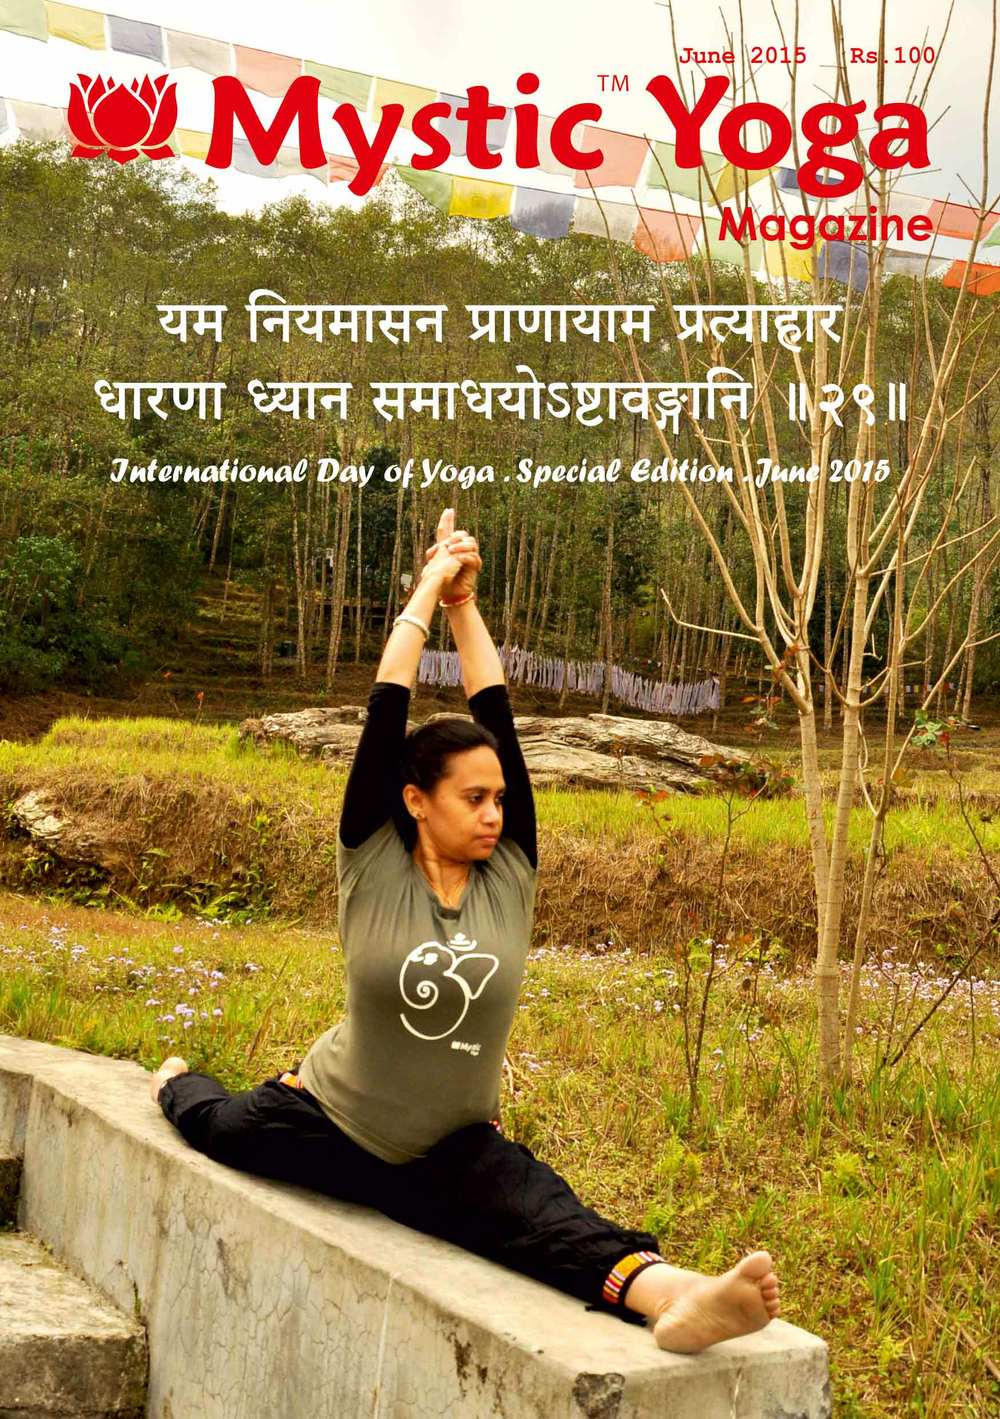 Mystic Yoga Magazine - June 2015